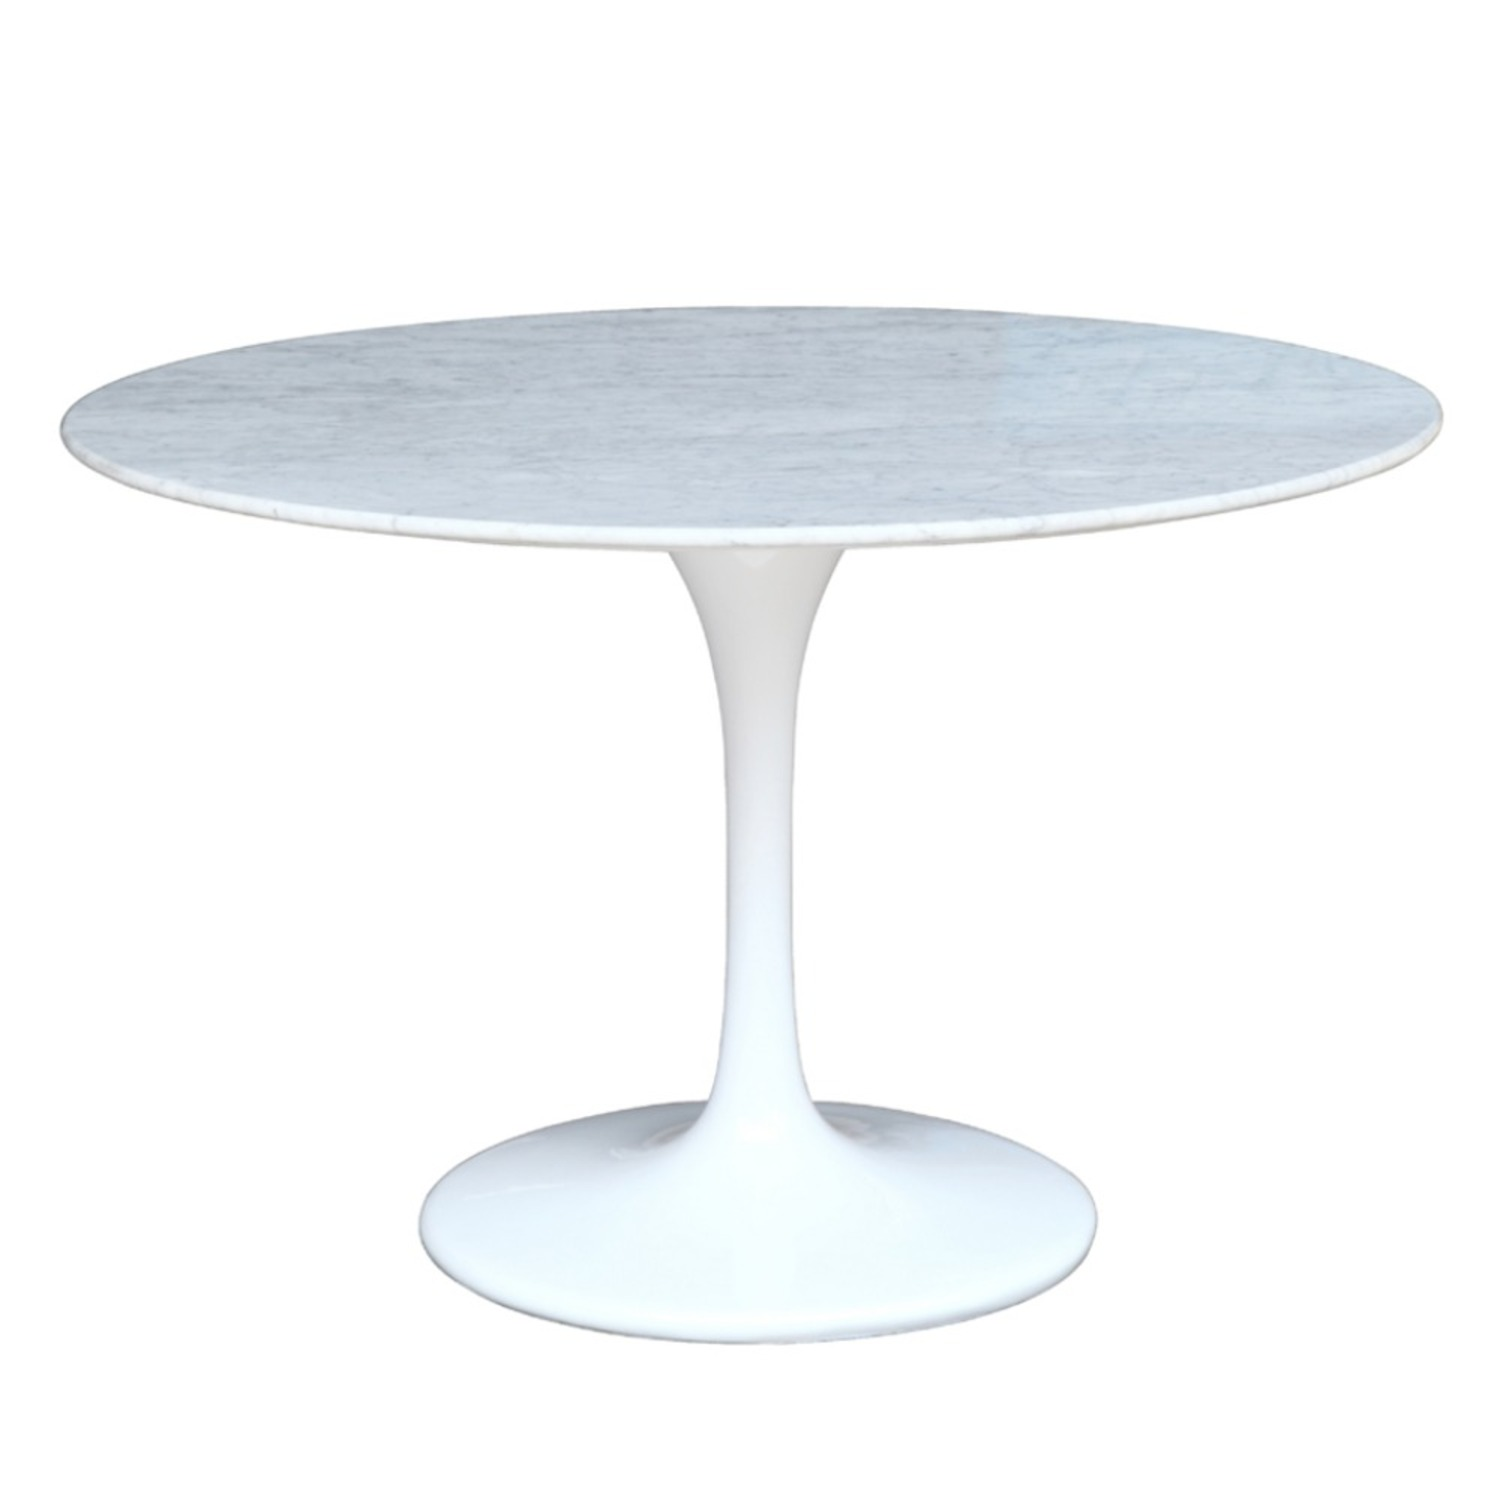 32-Inches Dining Table In White Faux Marble - image-0